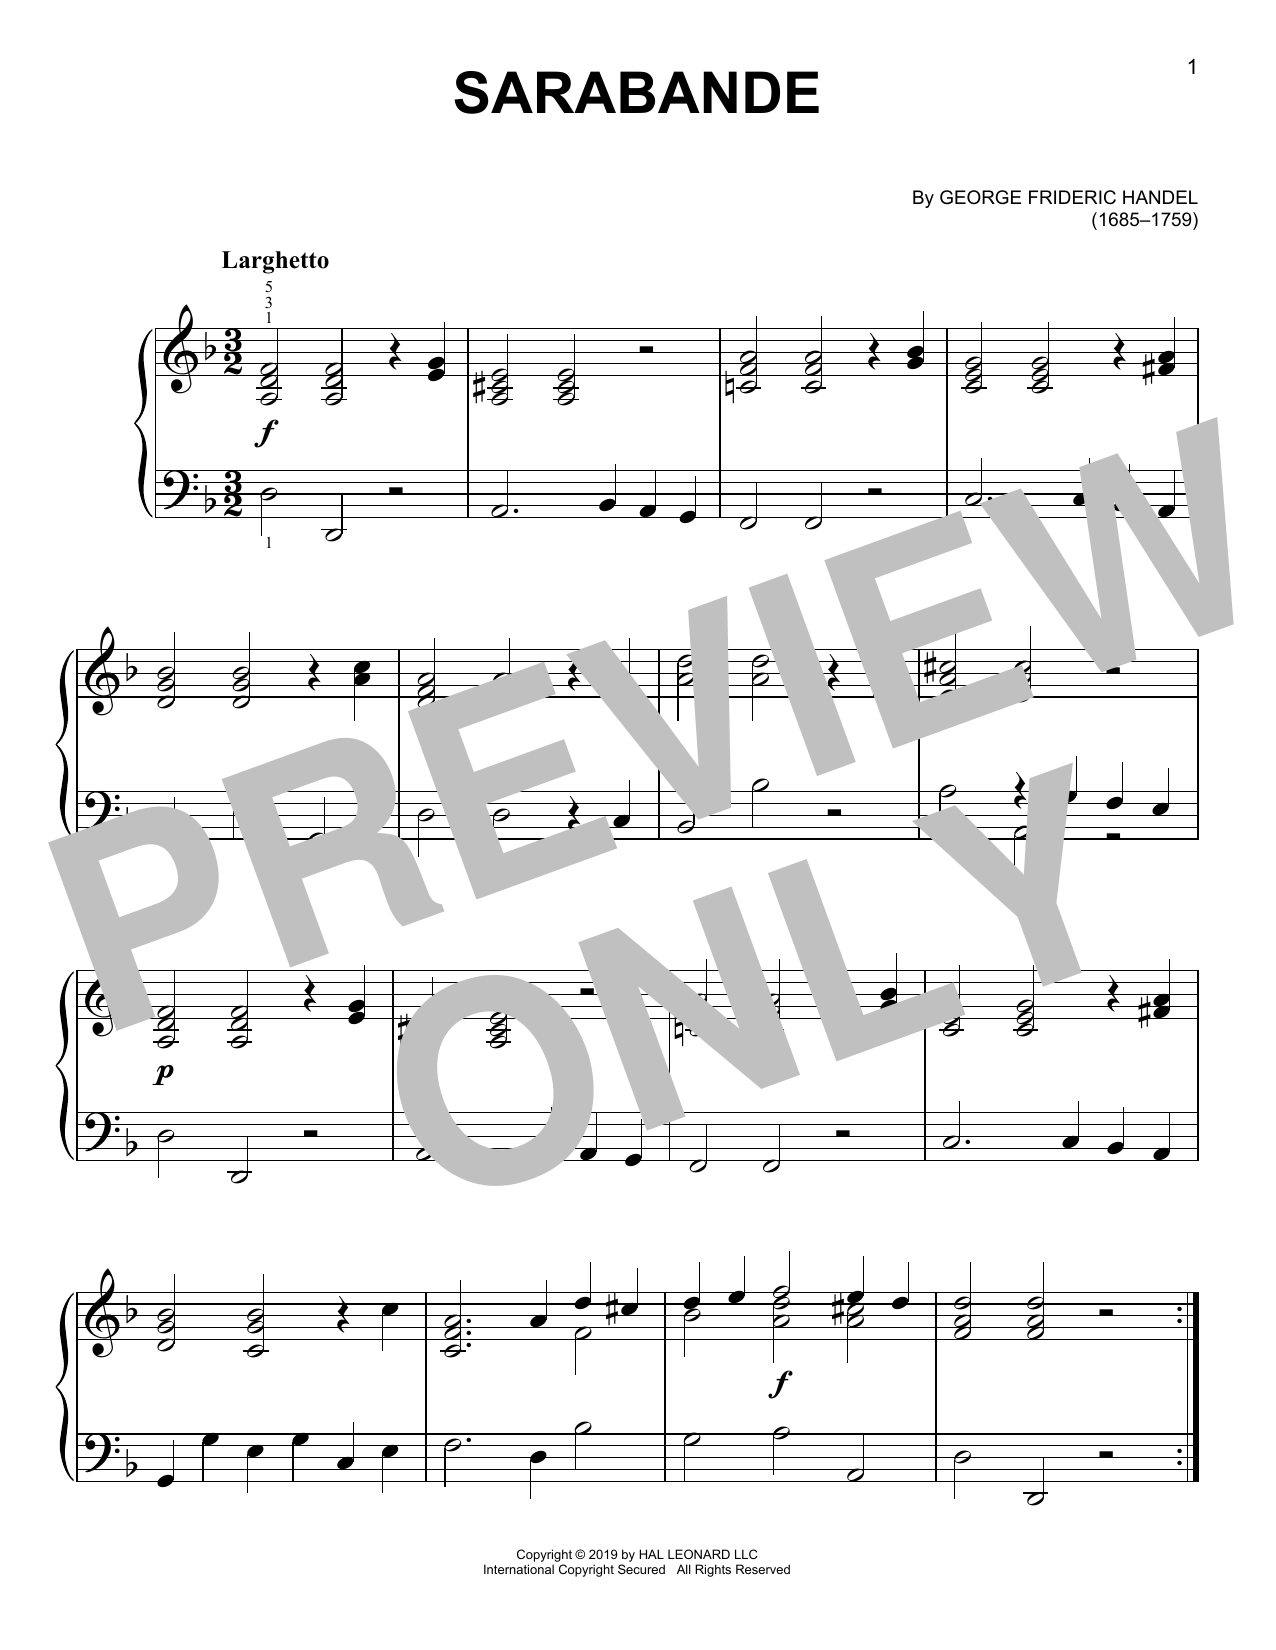 George Frideric Handel Sarabande sheet music notes and chords